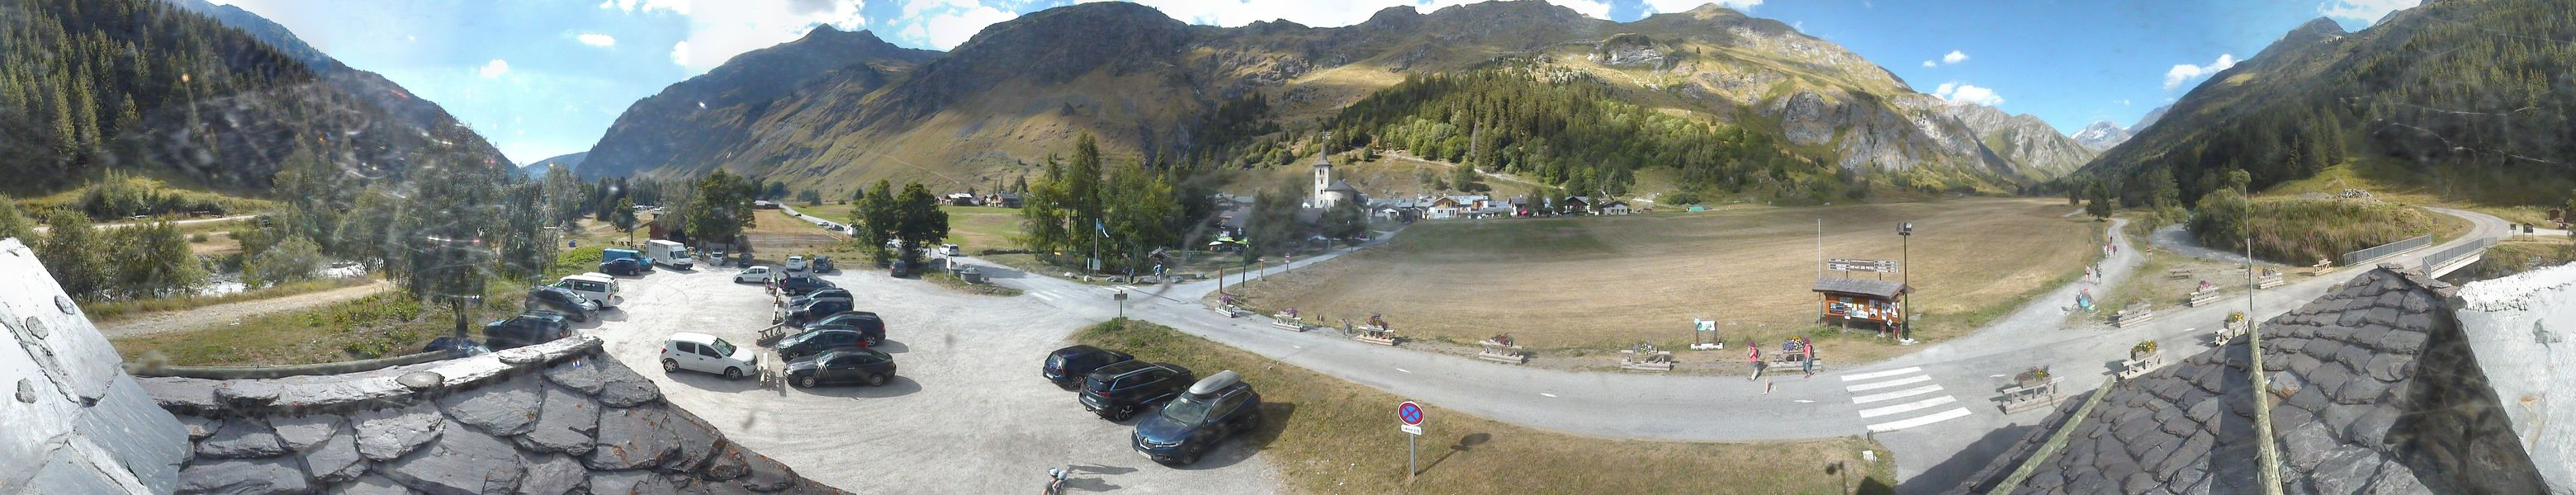 webcam panoramique Champagny En Vanoise